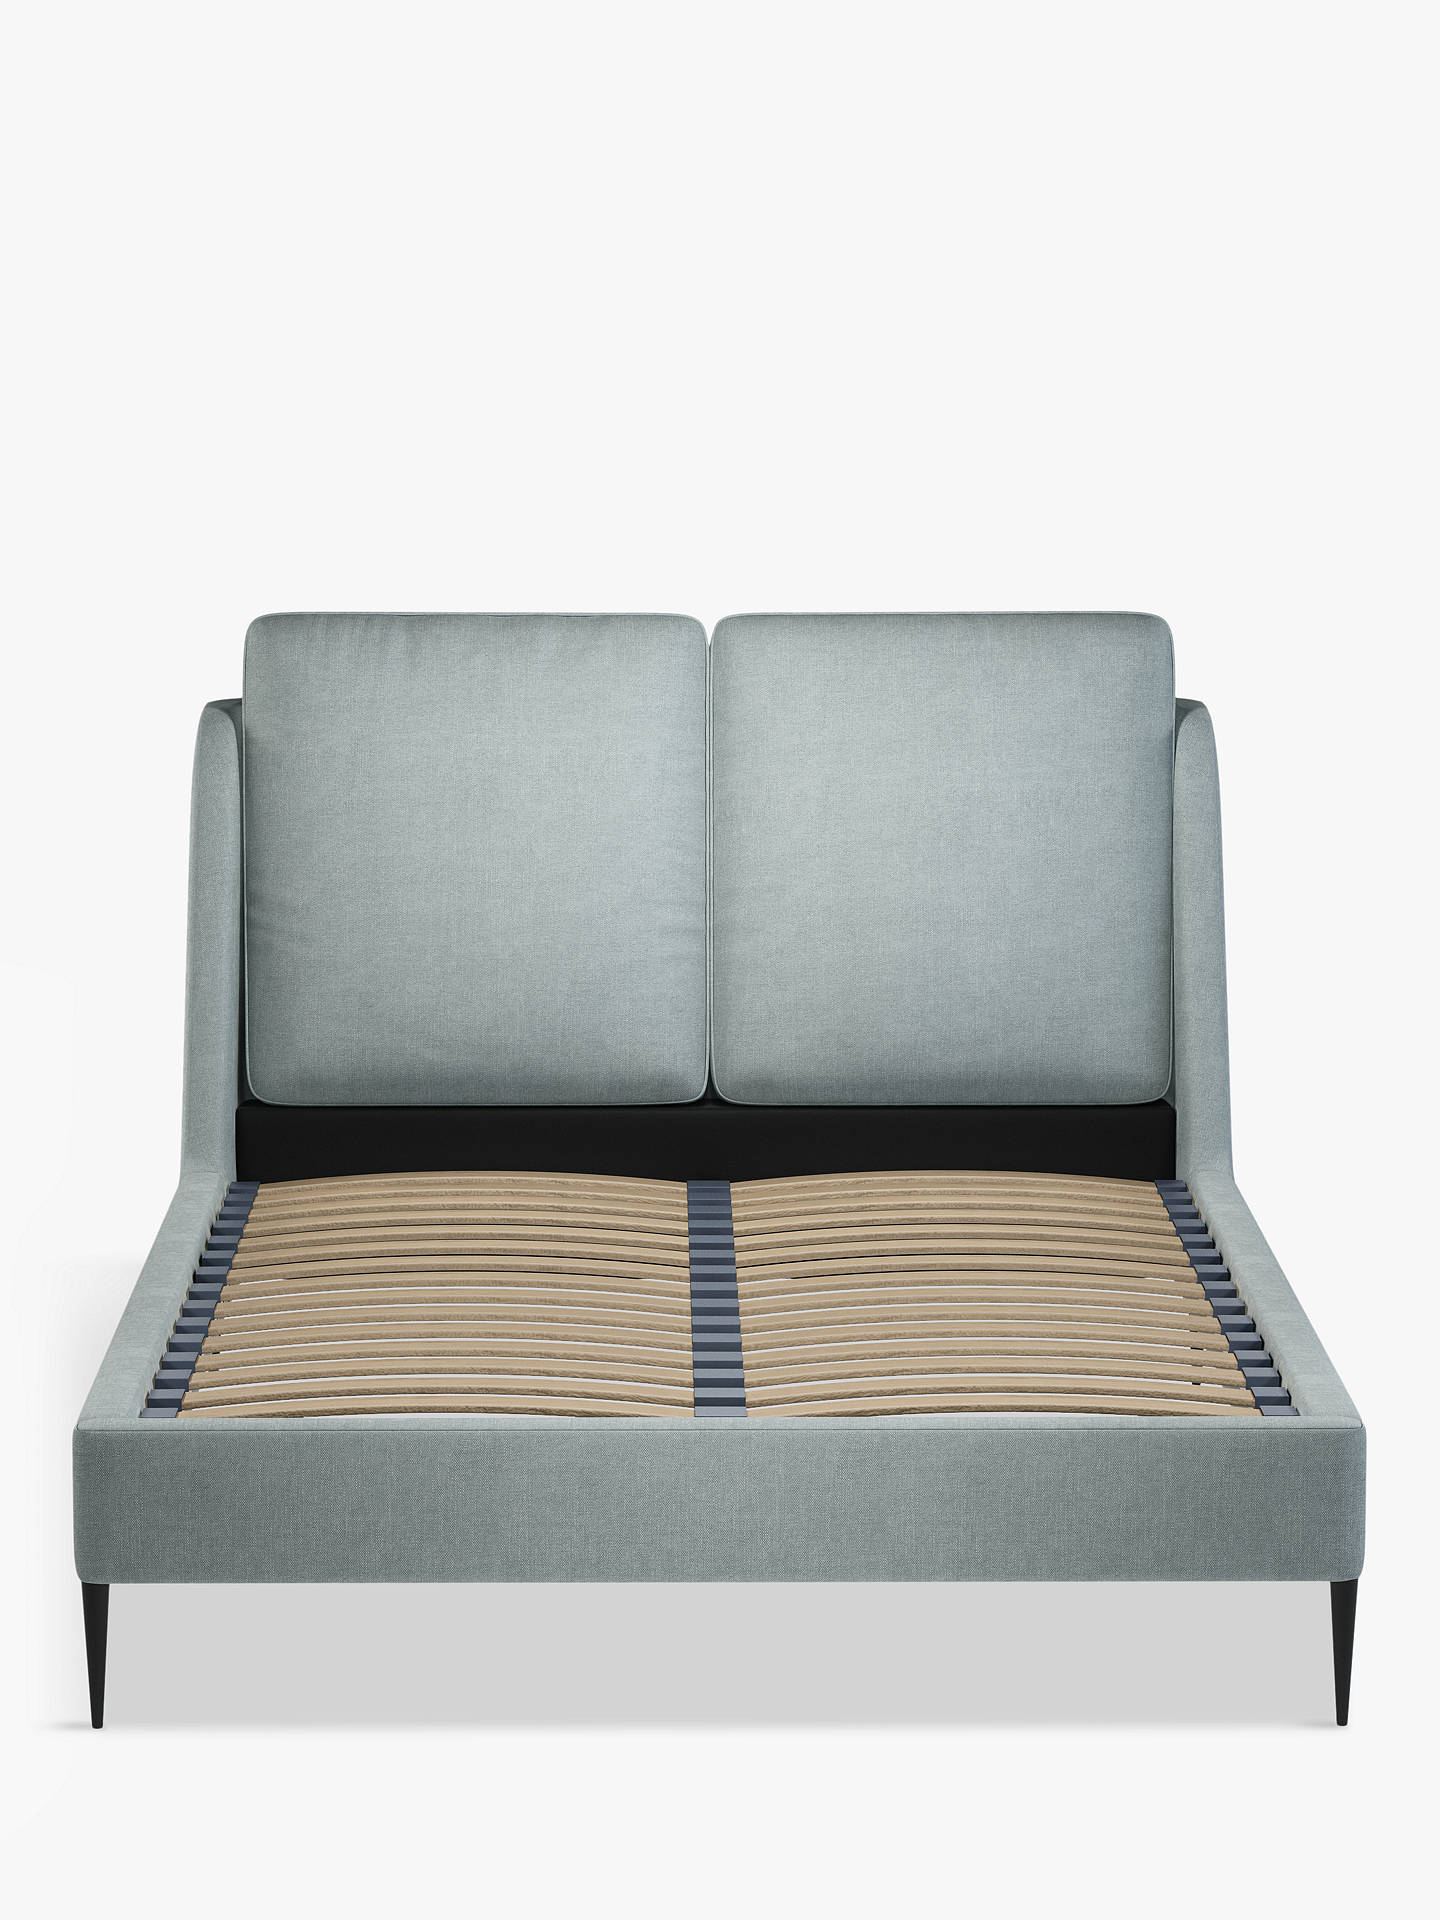 Buy John Lewis & Partners Giorgio Upholstered Bed Frame, Double, Erin Duck Egg Online at johnlewis.com